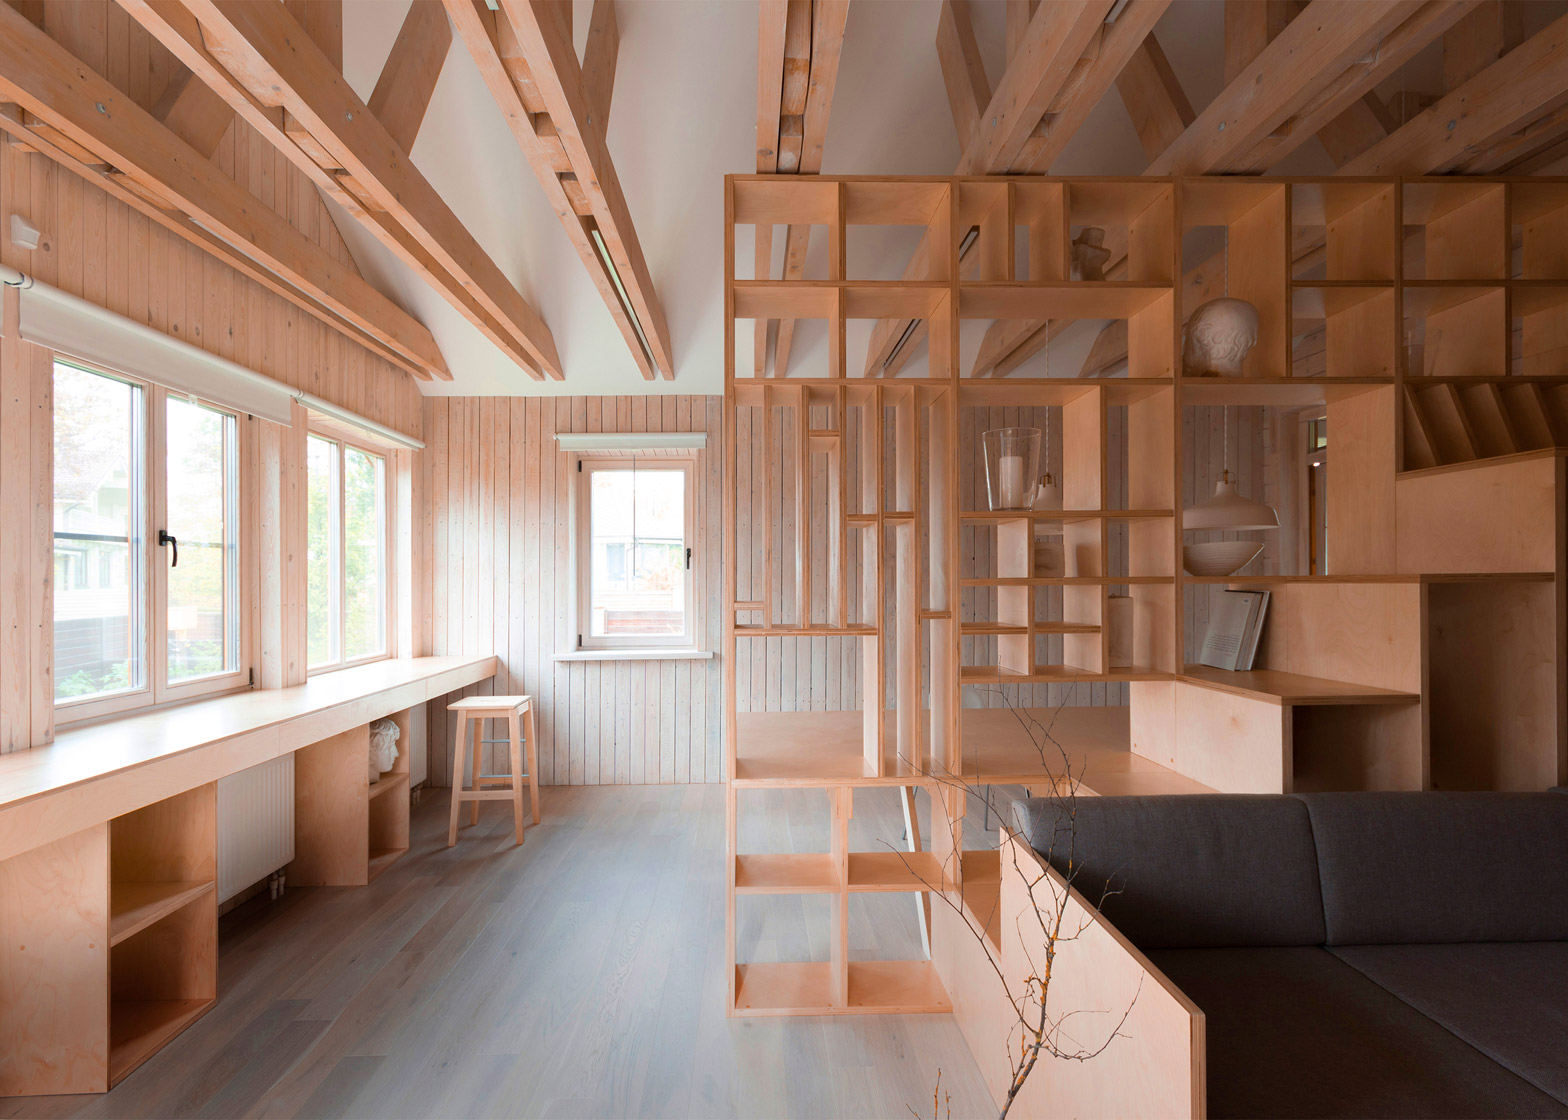 10 of dezeen's most popular plywood interiors on pinterest